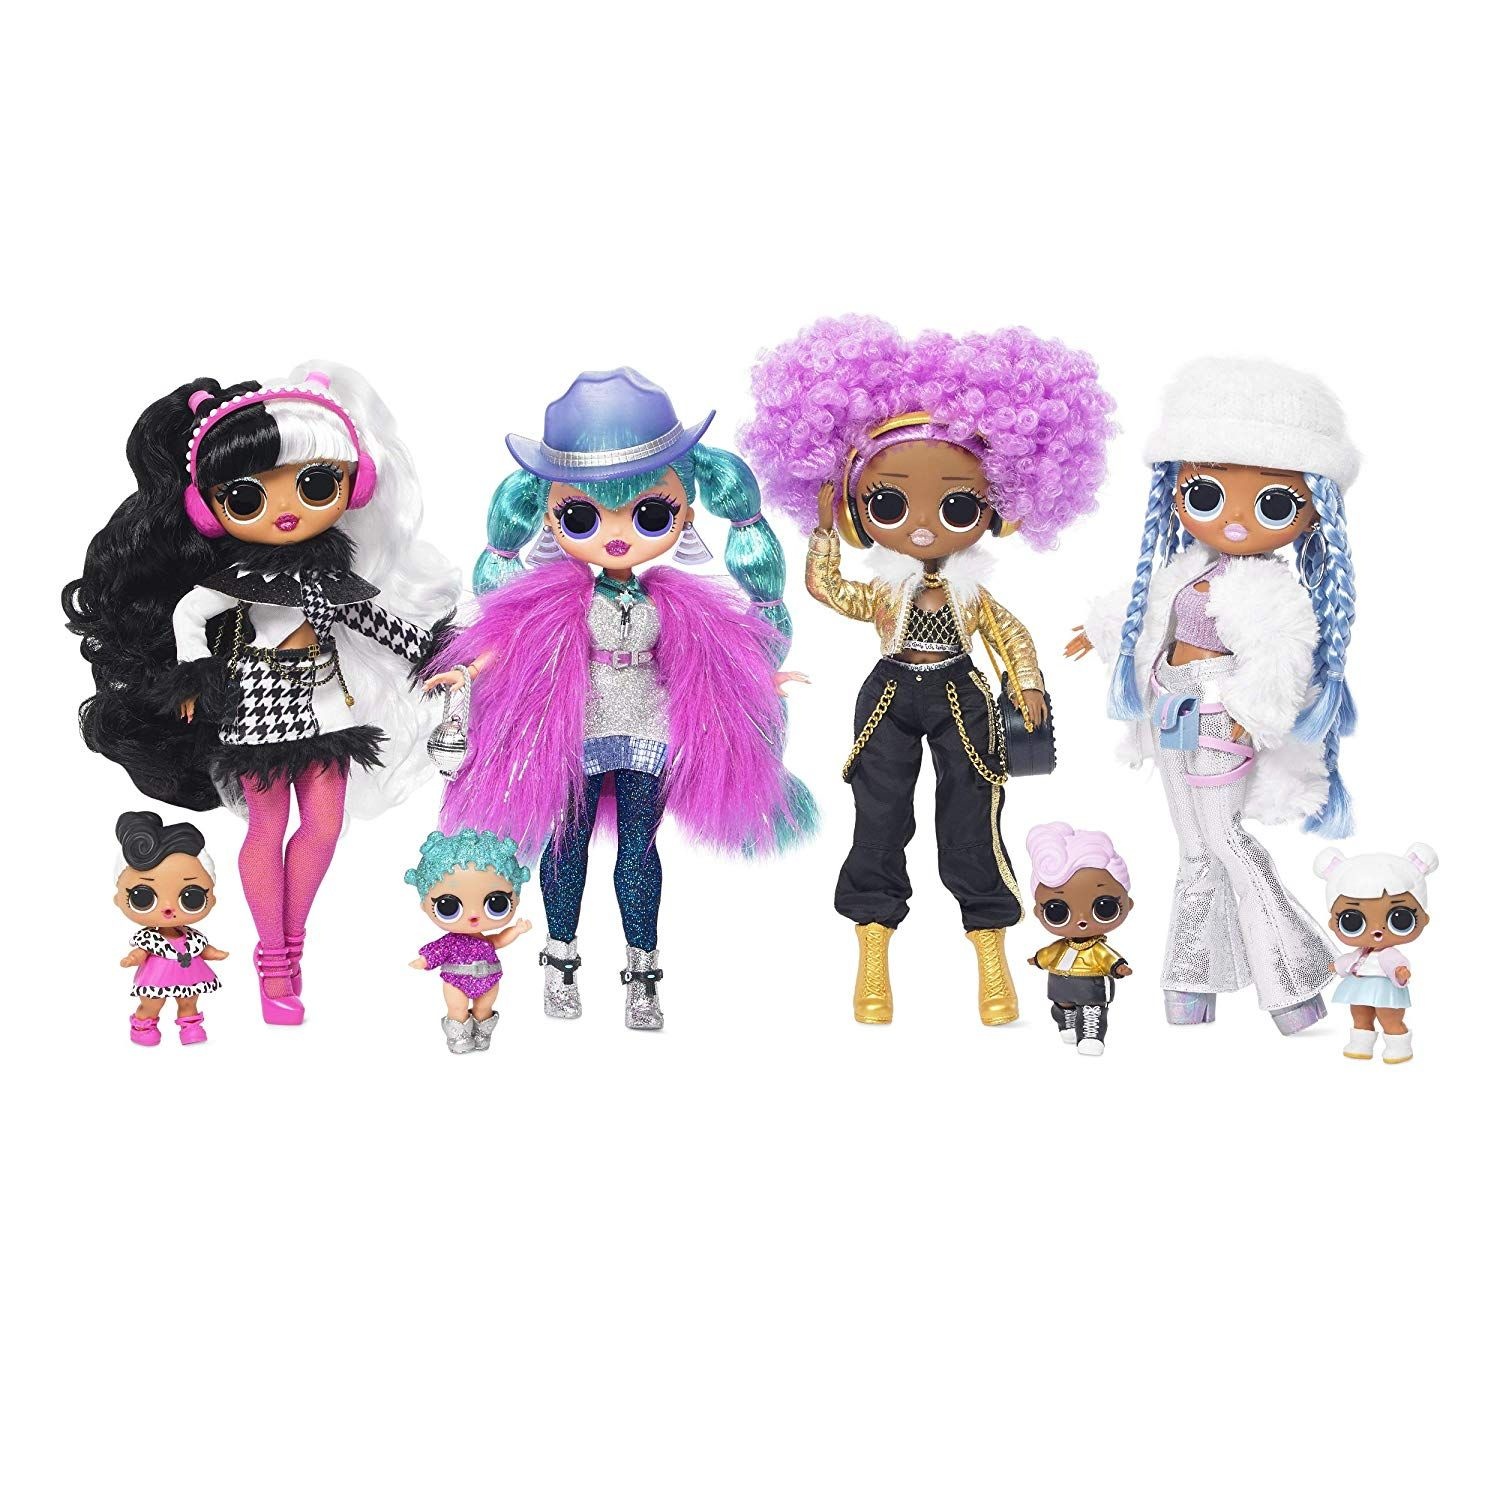 Free 2 Day Shipping Buy 4 Pack L O L Surprise O M G Winter Disco 25 Surprises Each Fashion Dolls Dollie Cosmic N Lol Dolls Fashion Dolls Disco Fashion